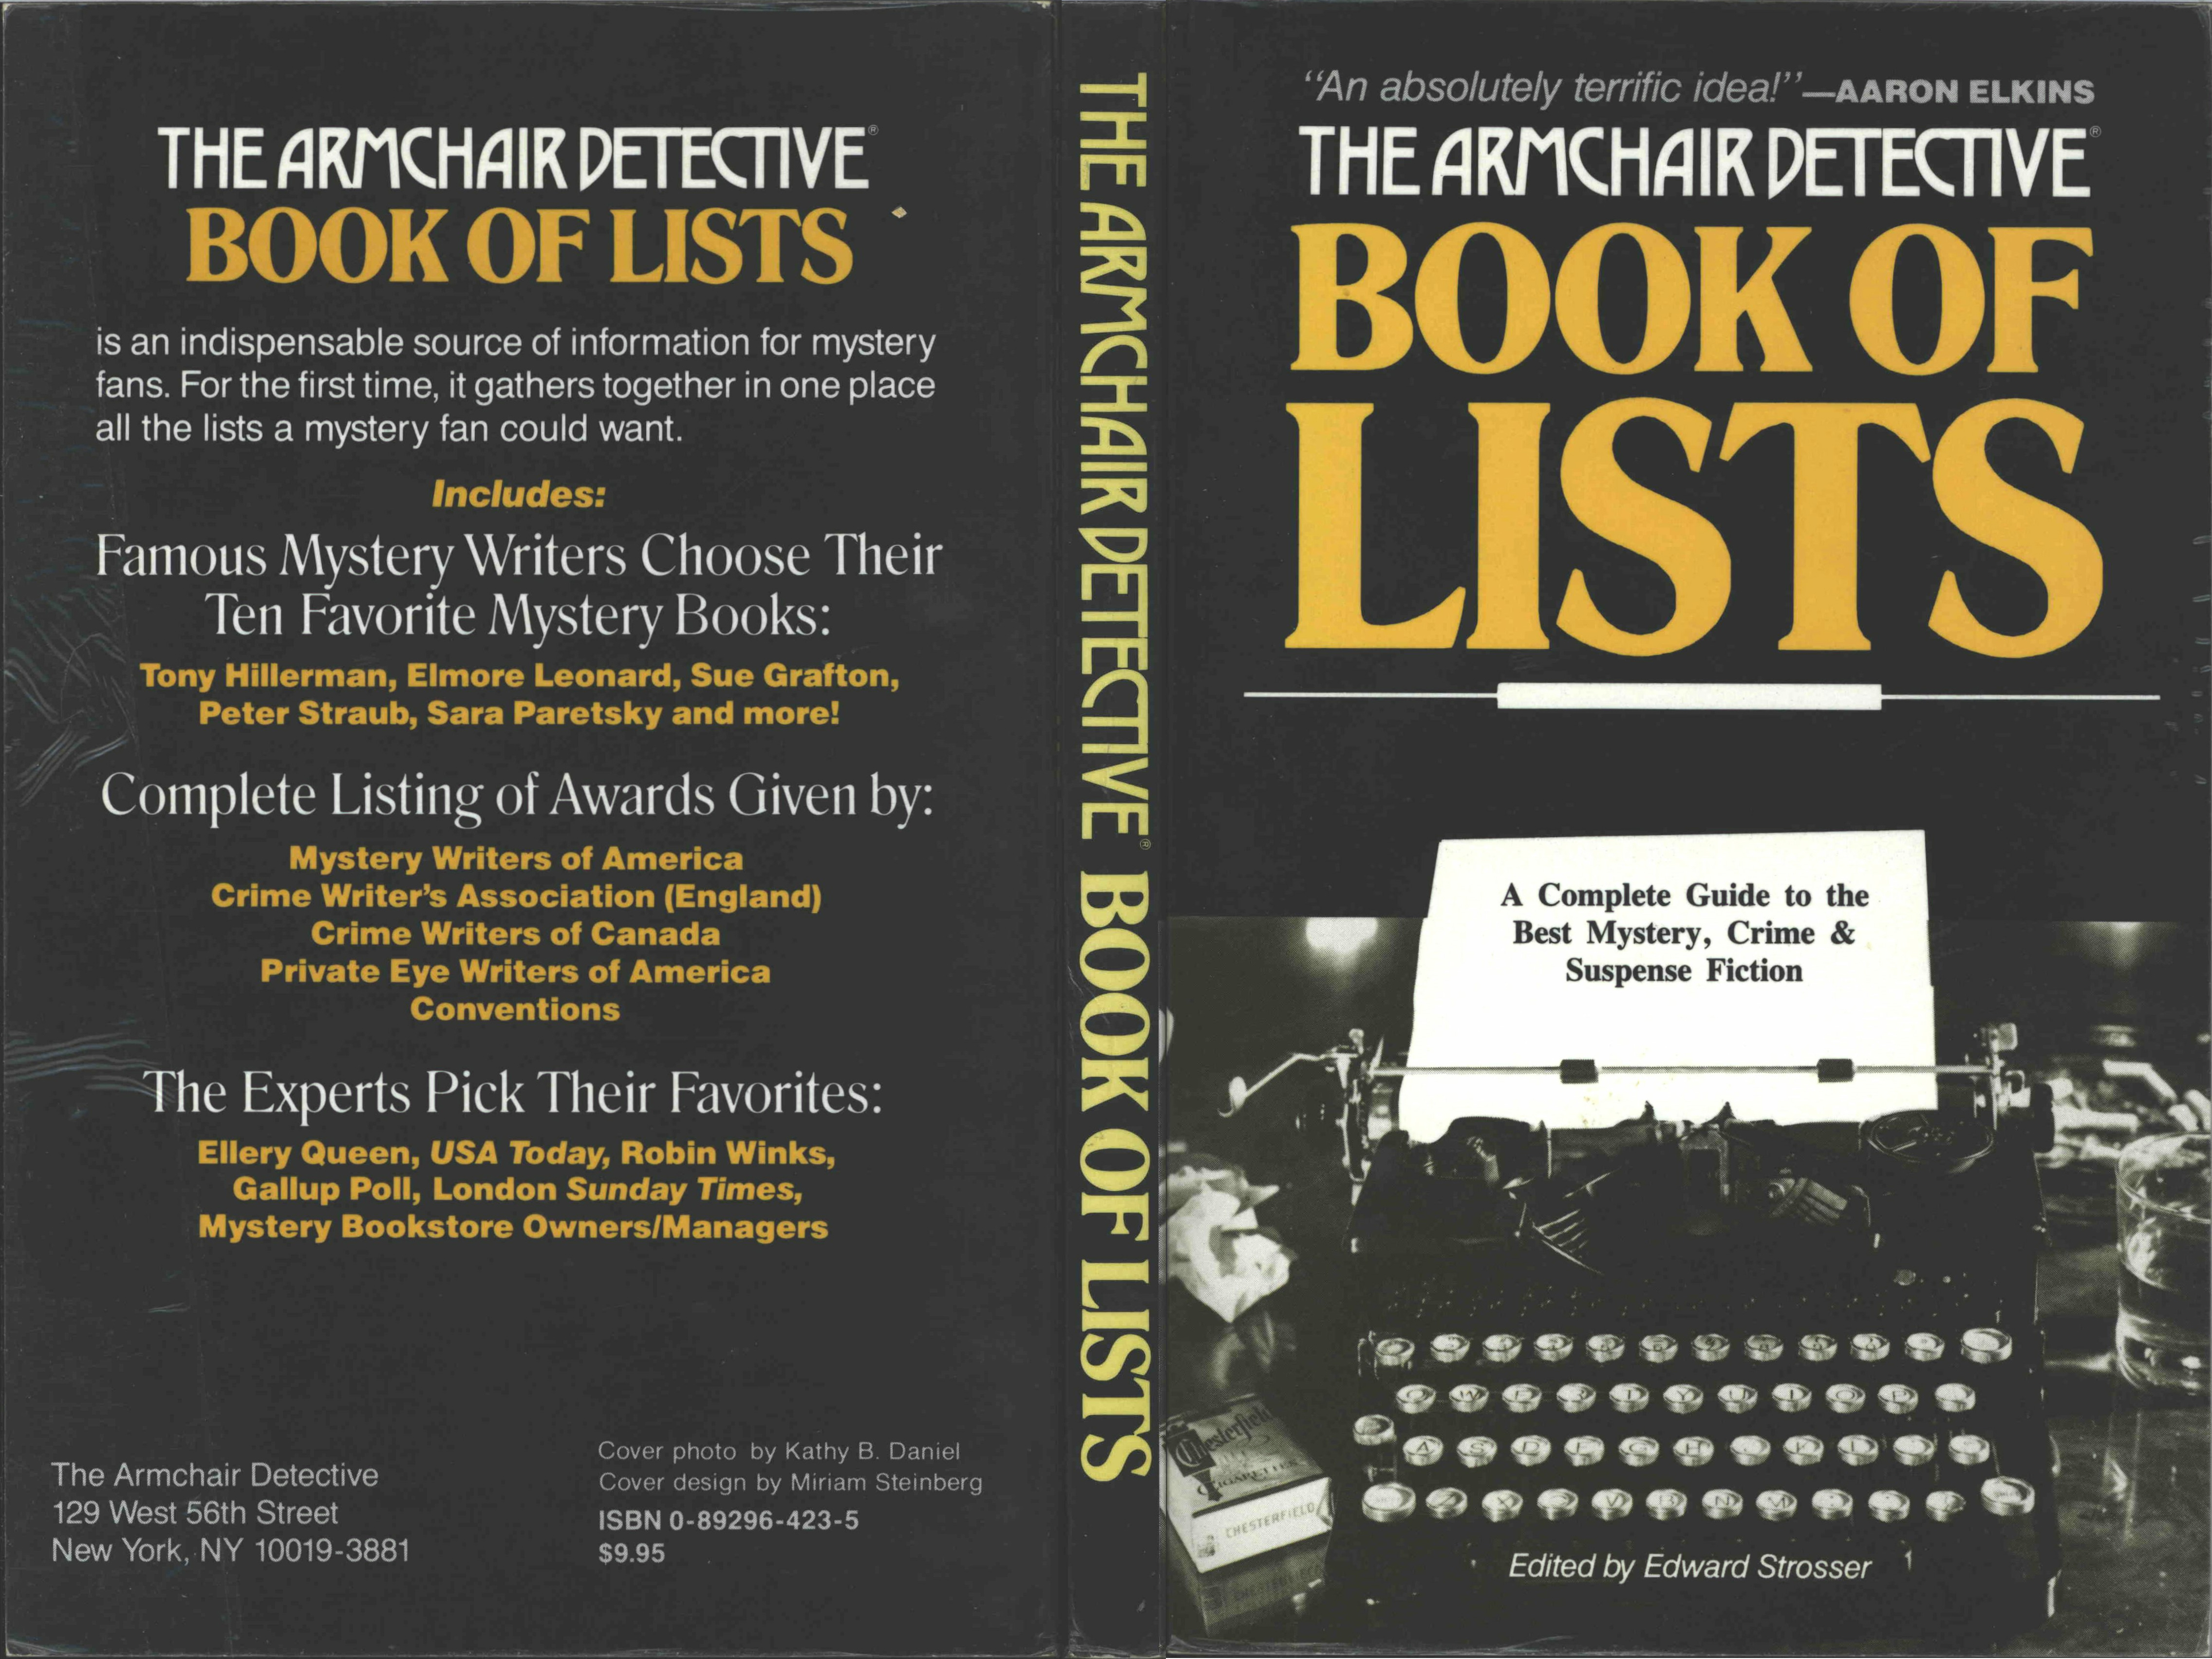 The Armchair Detective Book of Lists [The Armchair Detective